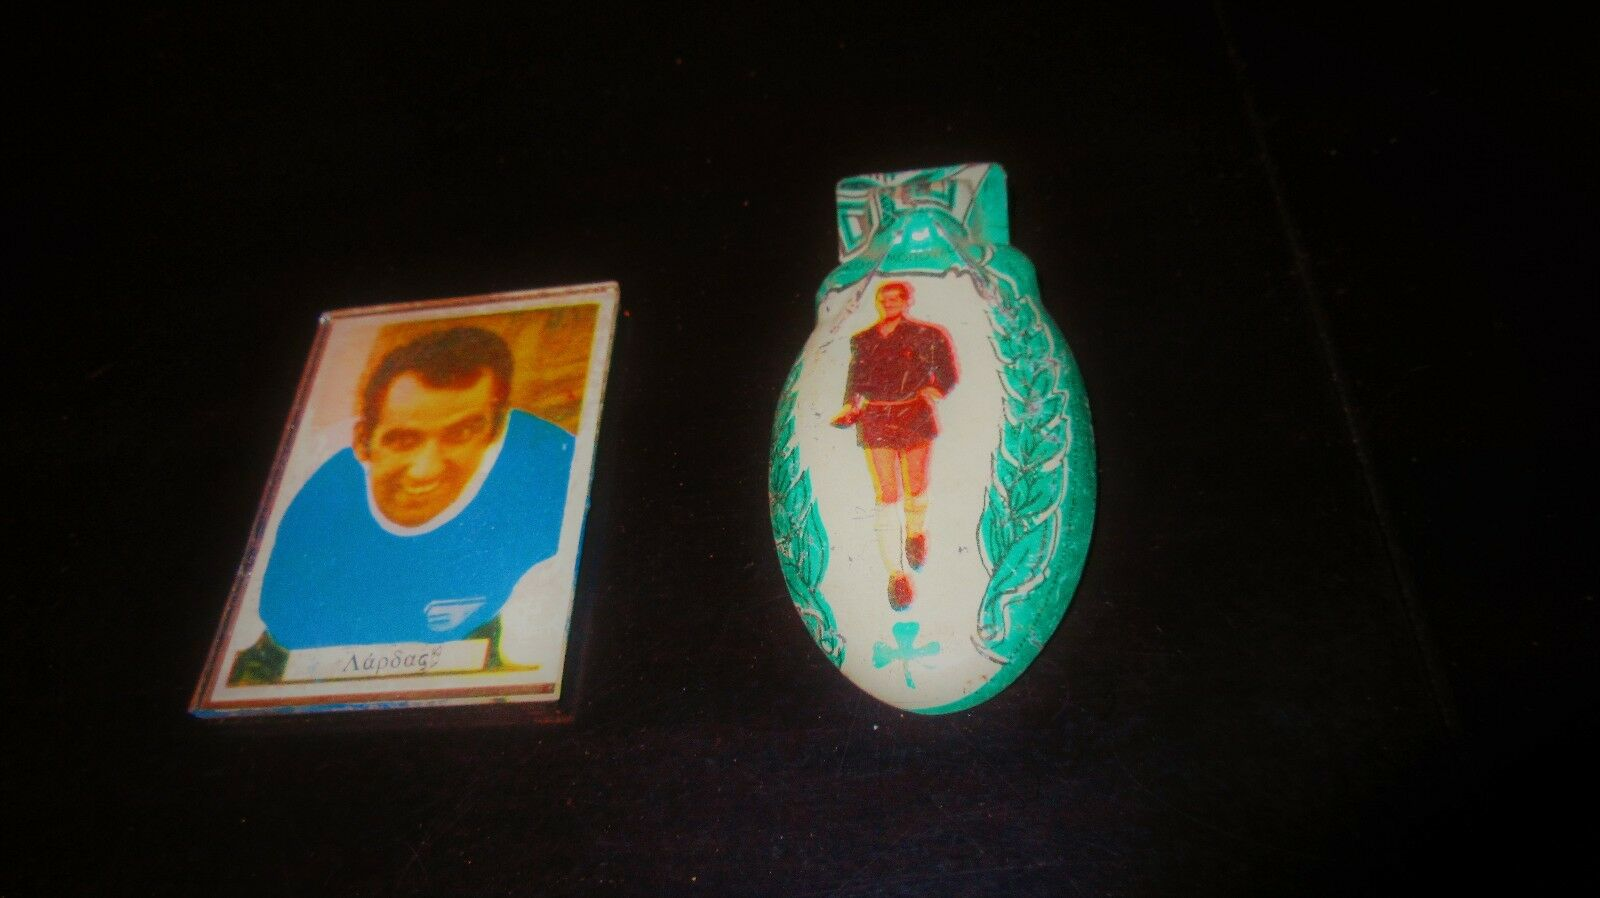 AMAZING VINTAGE GREEK PENNY TOYS FOOTBALL PLAYERS MIRROR & NOISE MAKER 60s